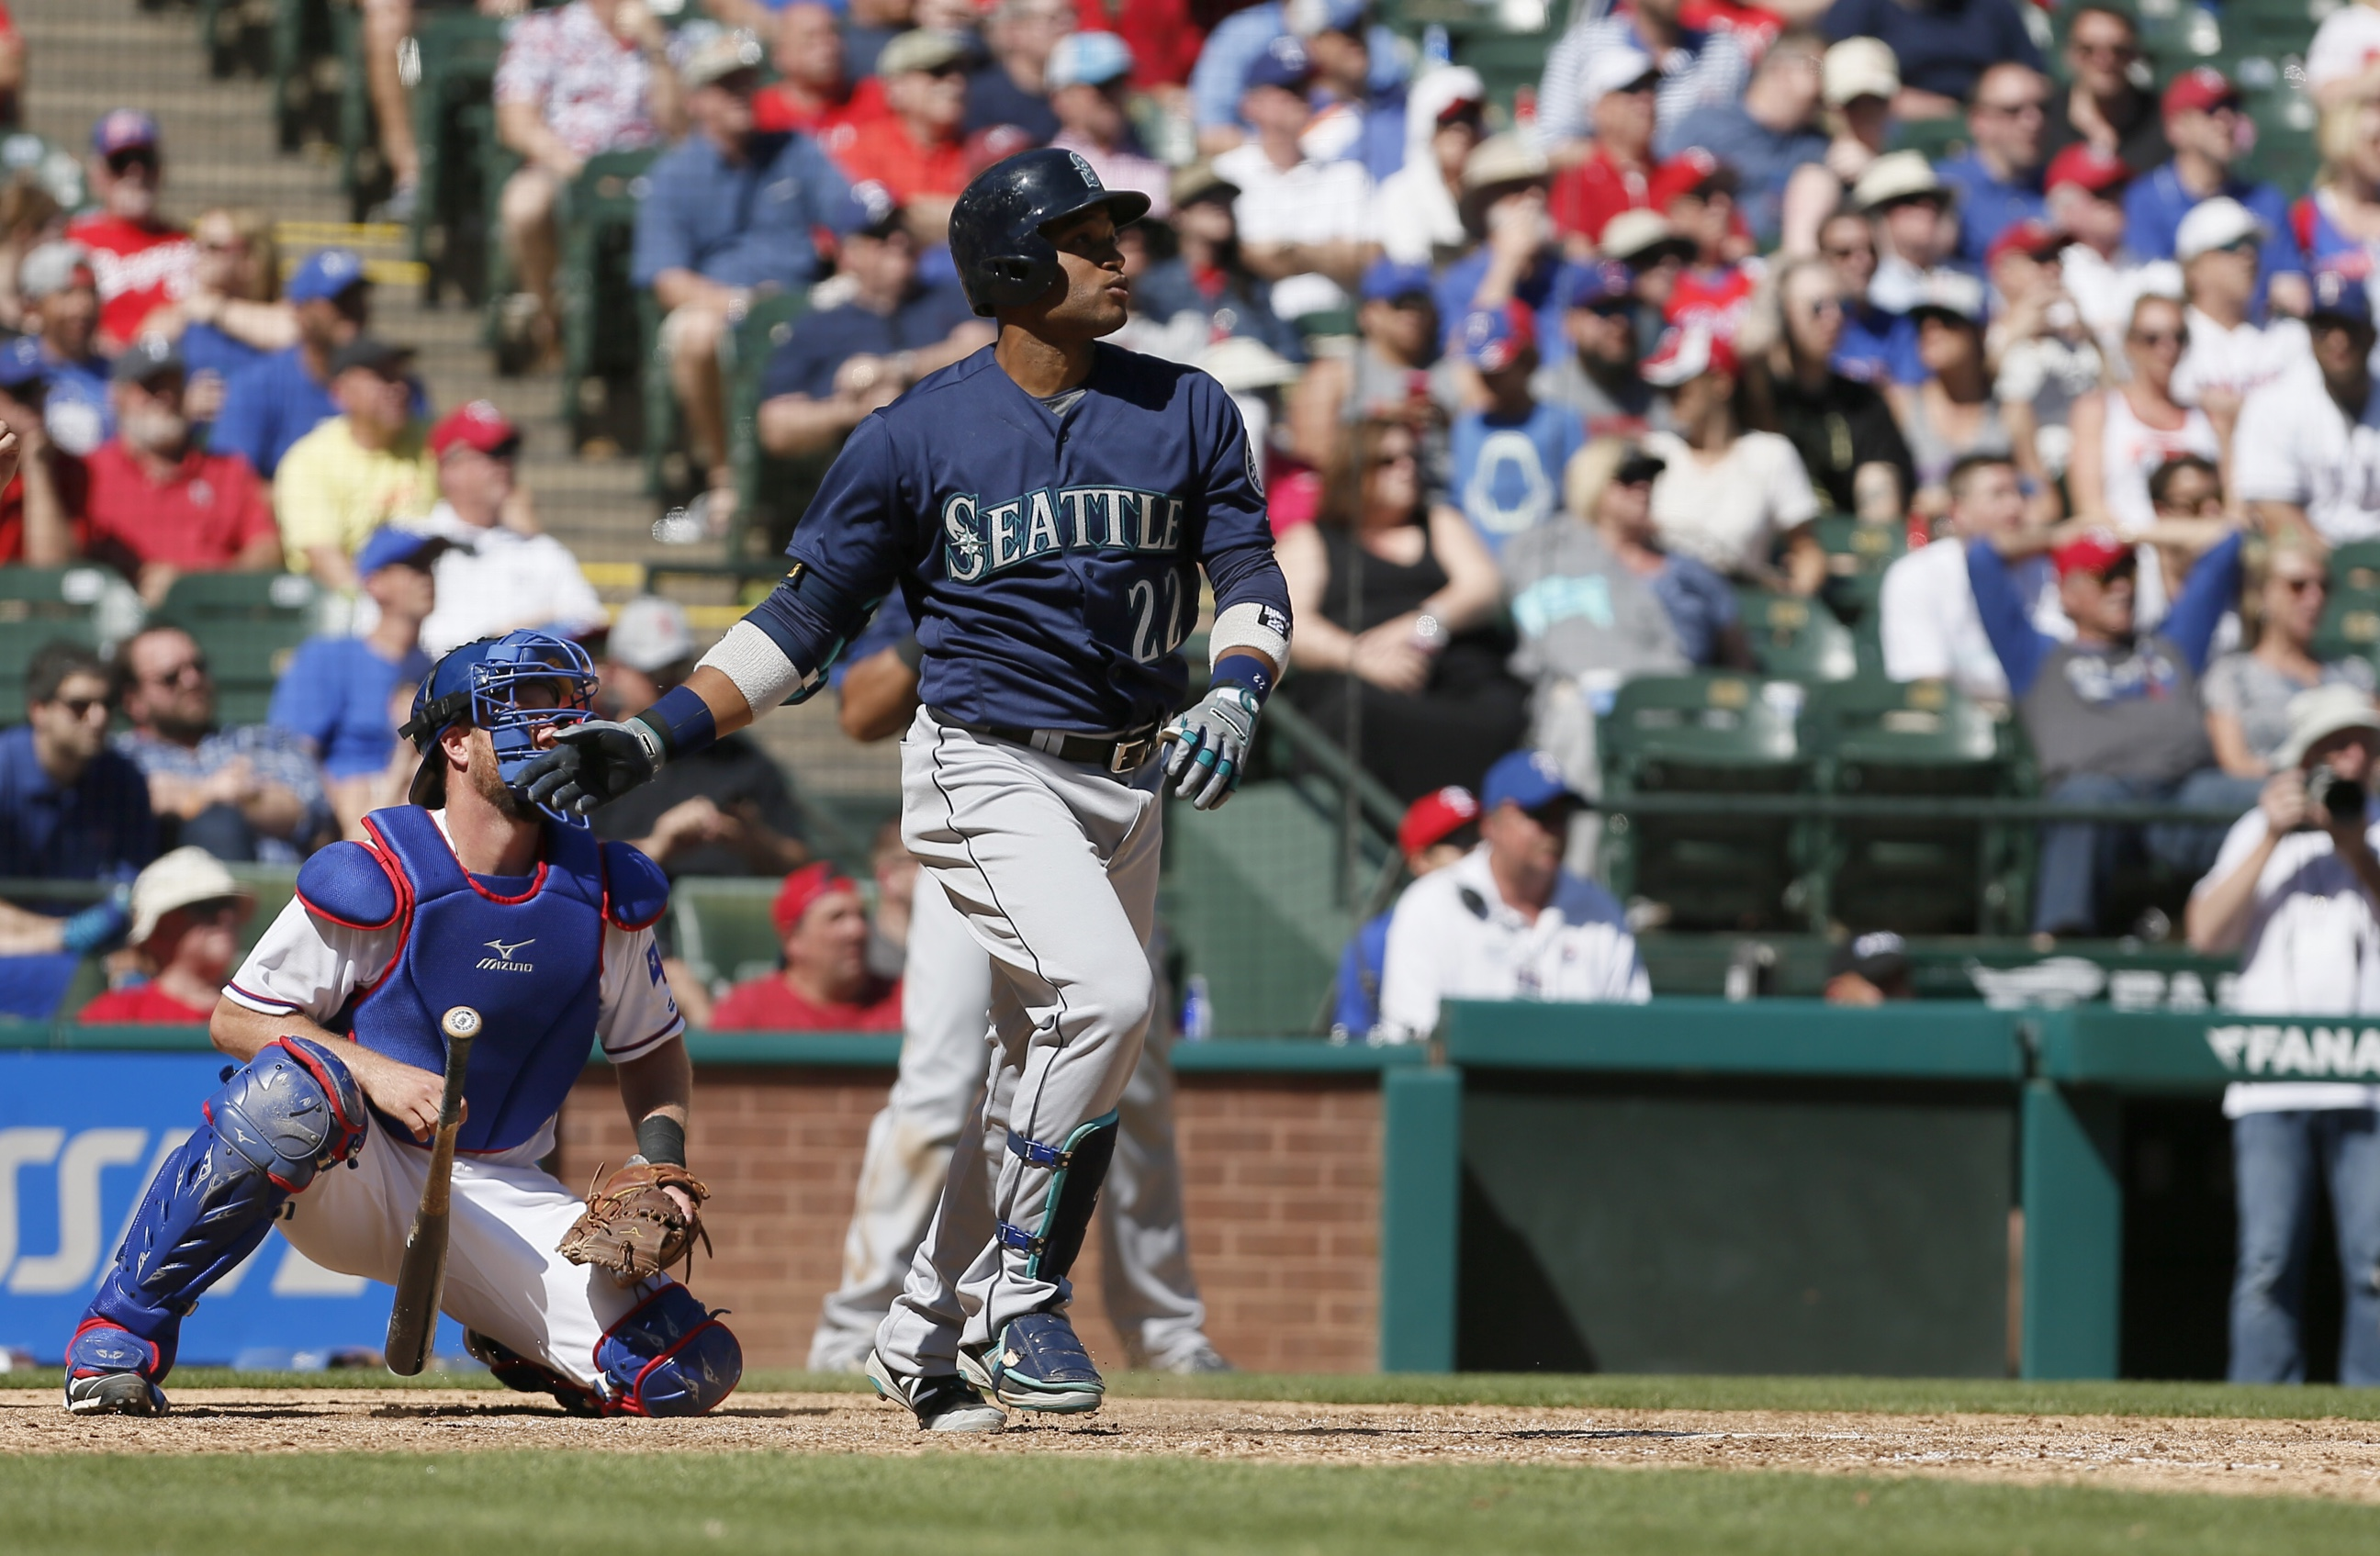 Seattle Mariners Robinson Cano (22) watches as his hit goes for a two-run home run during the ninth inning of a baseball game against the Texas Rangers Wednesday, April 6, 2016, in Arlington, Texas. (AP Photo/Brandon Wade)